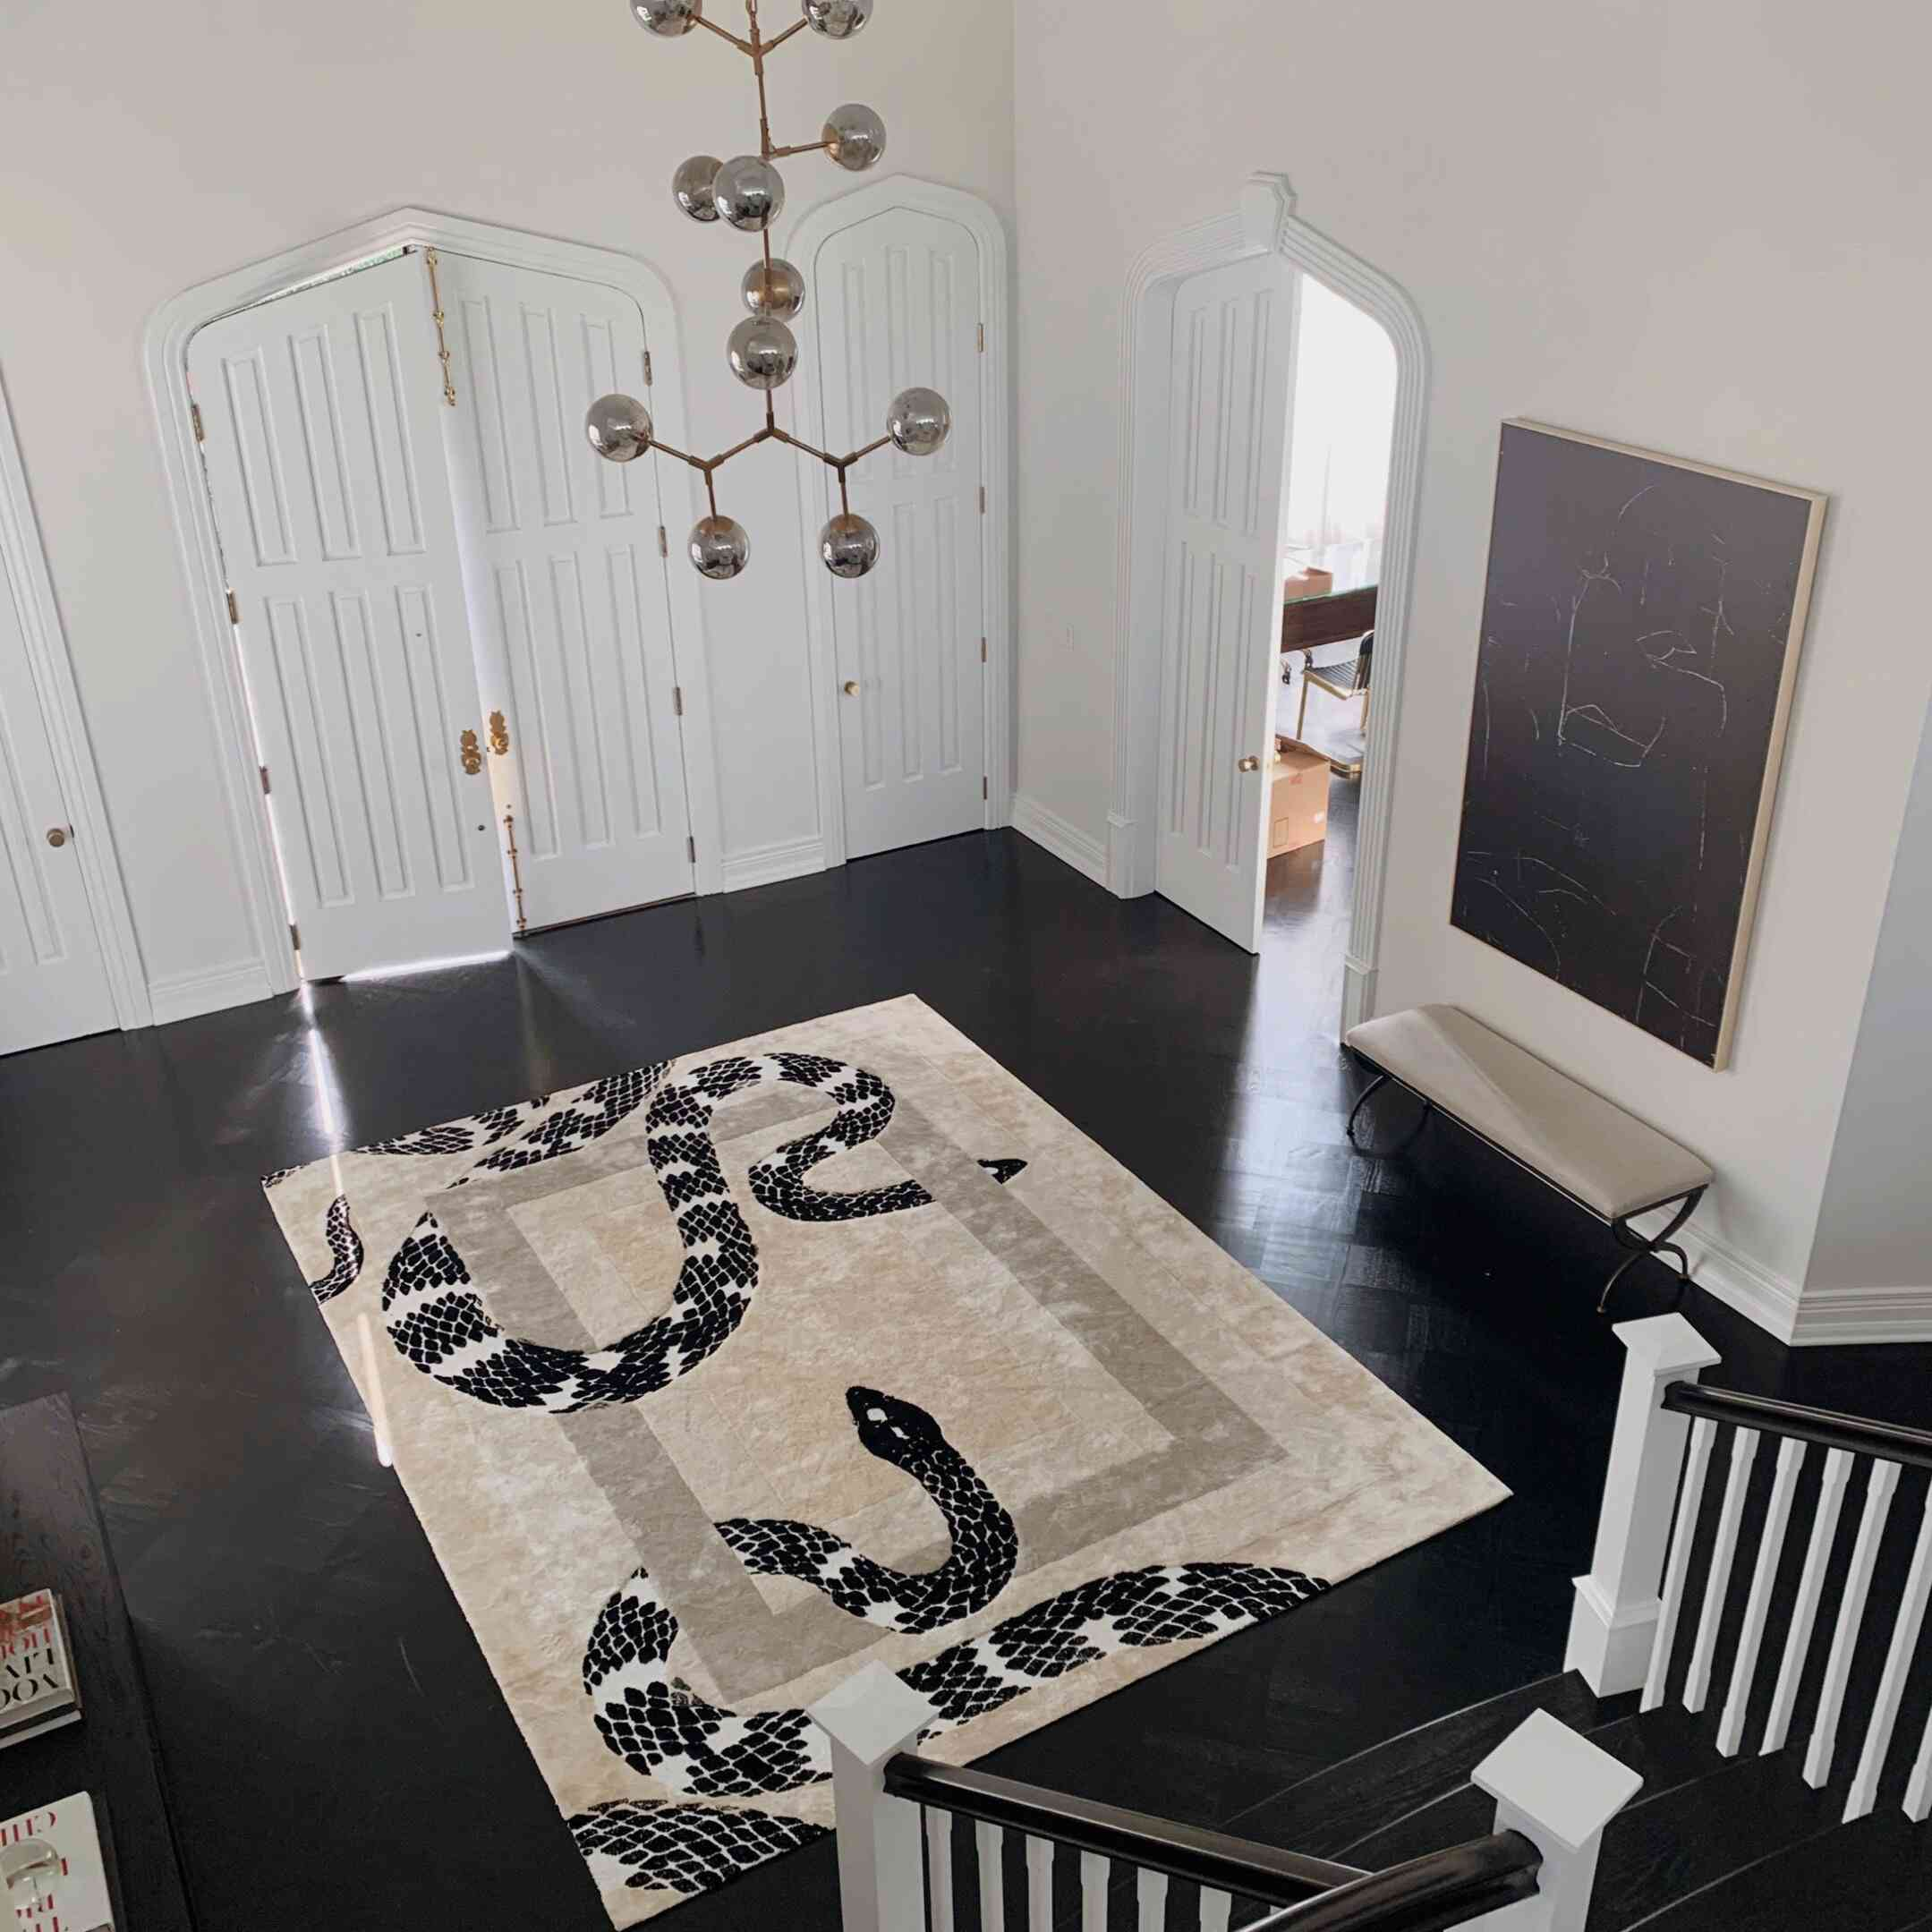 entryway with large area rug that has print of two snakes on it